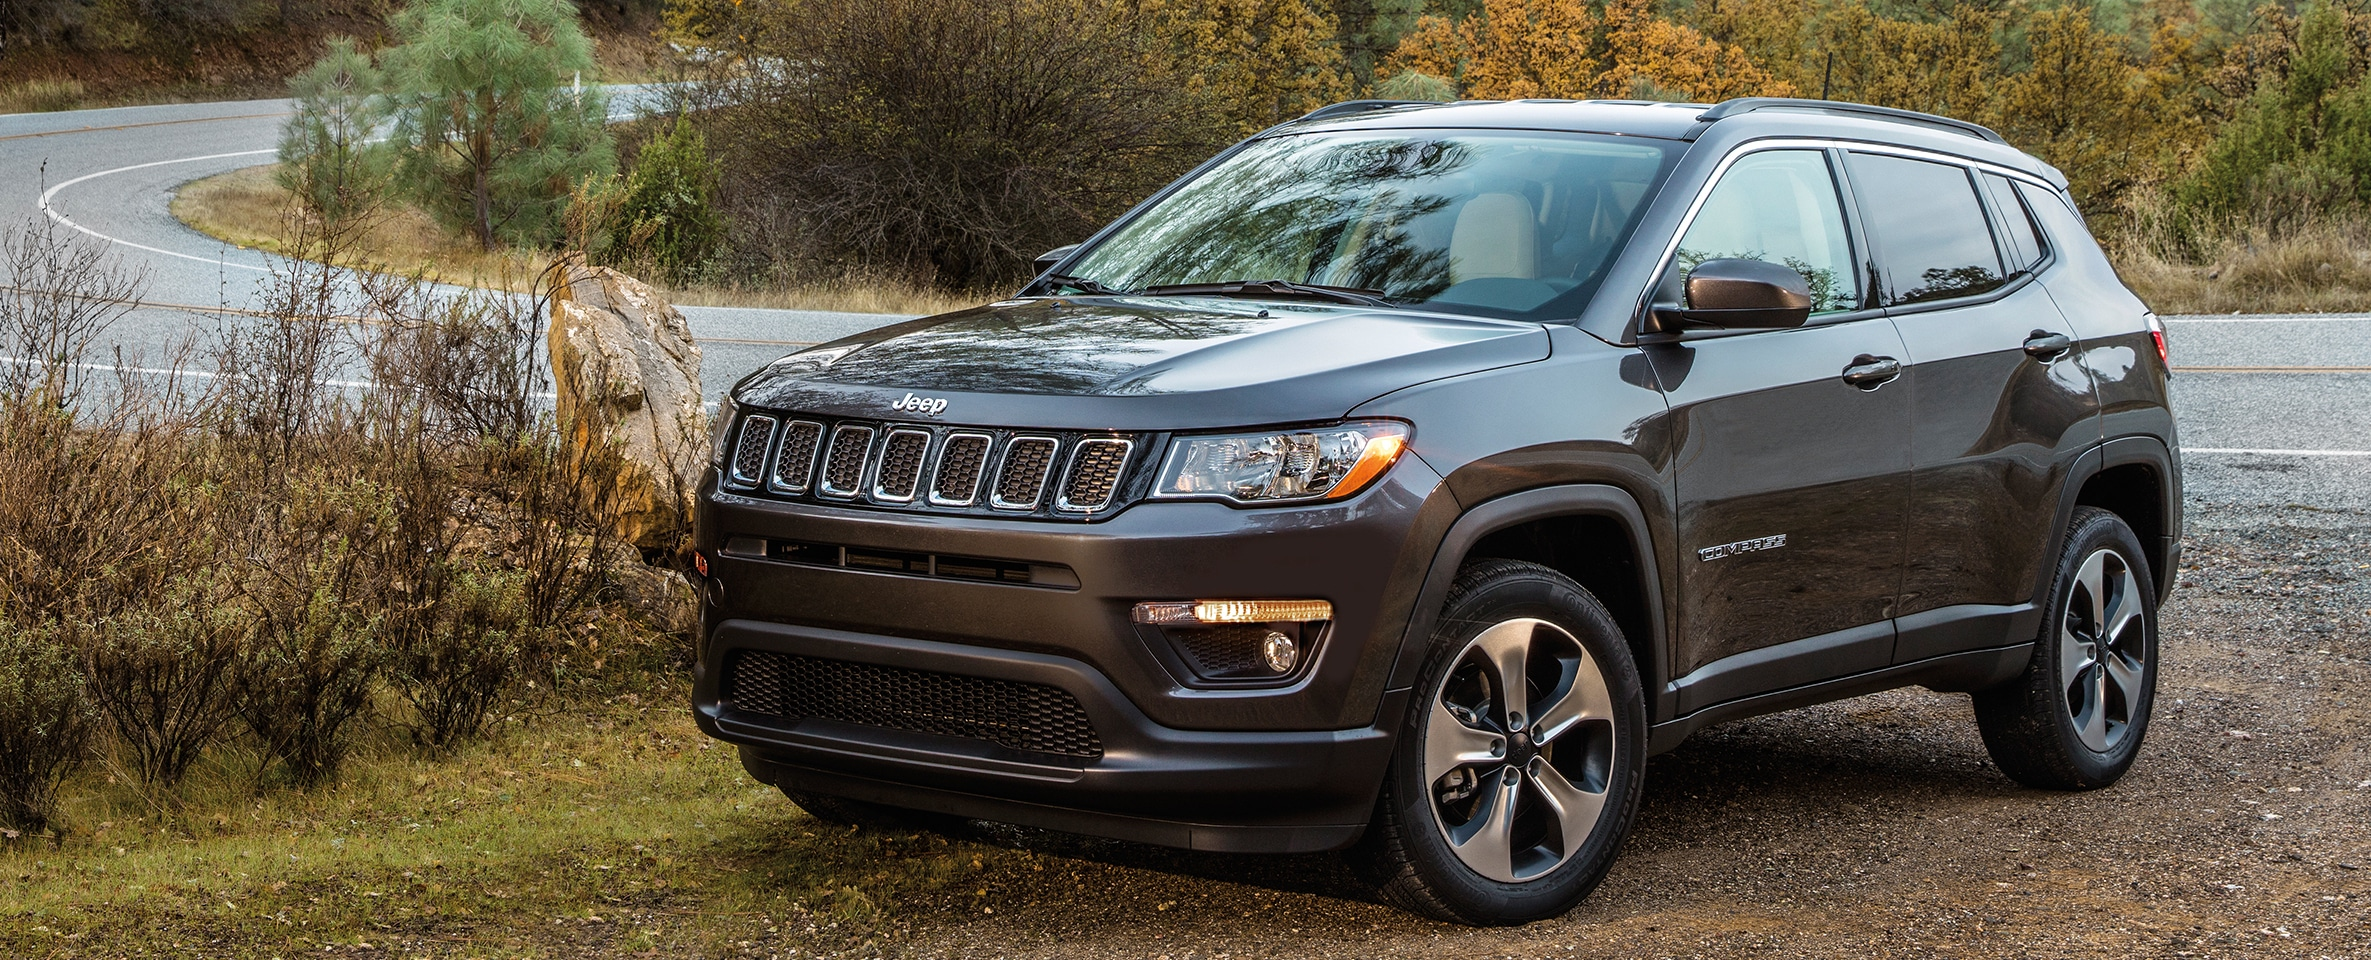 2020 Jeep Compass Mishawaka